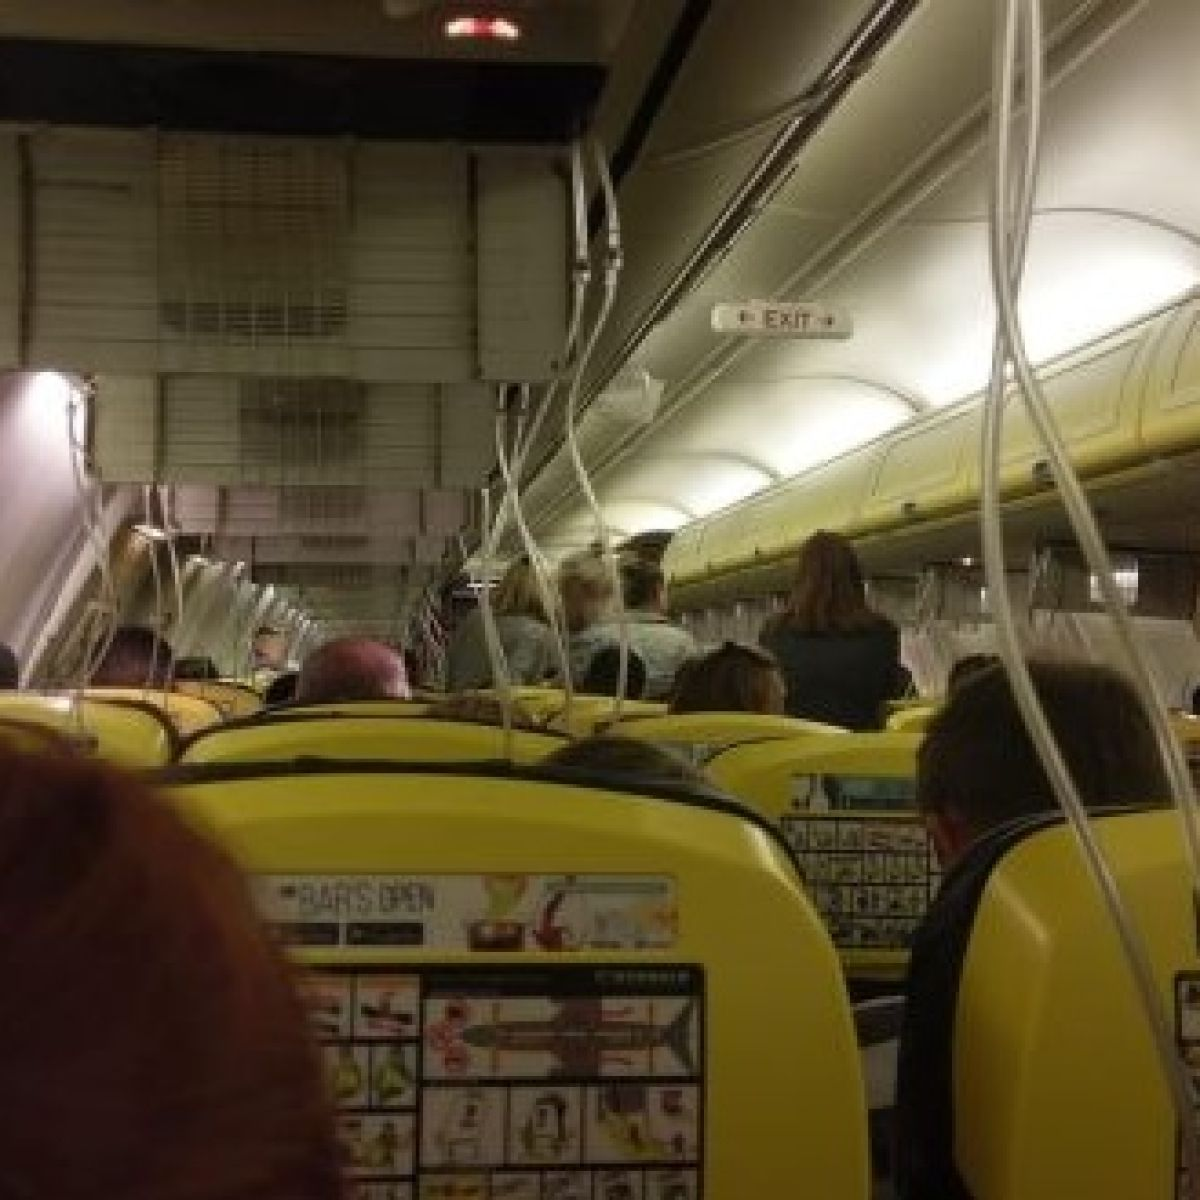 I thought we were done for' - passengers on Ryanair flight